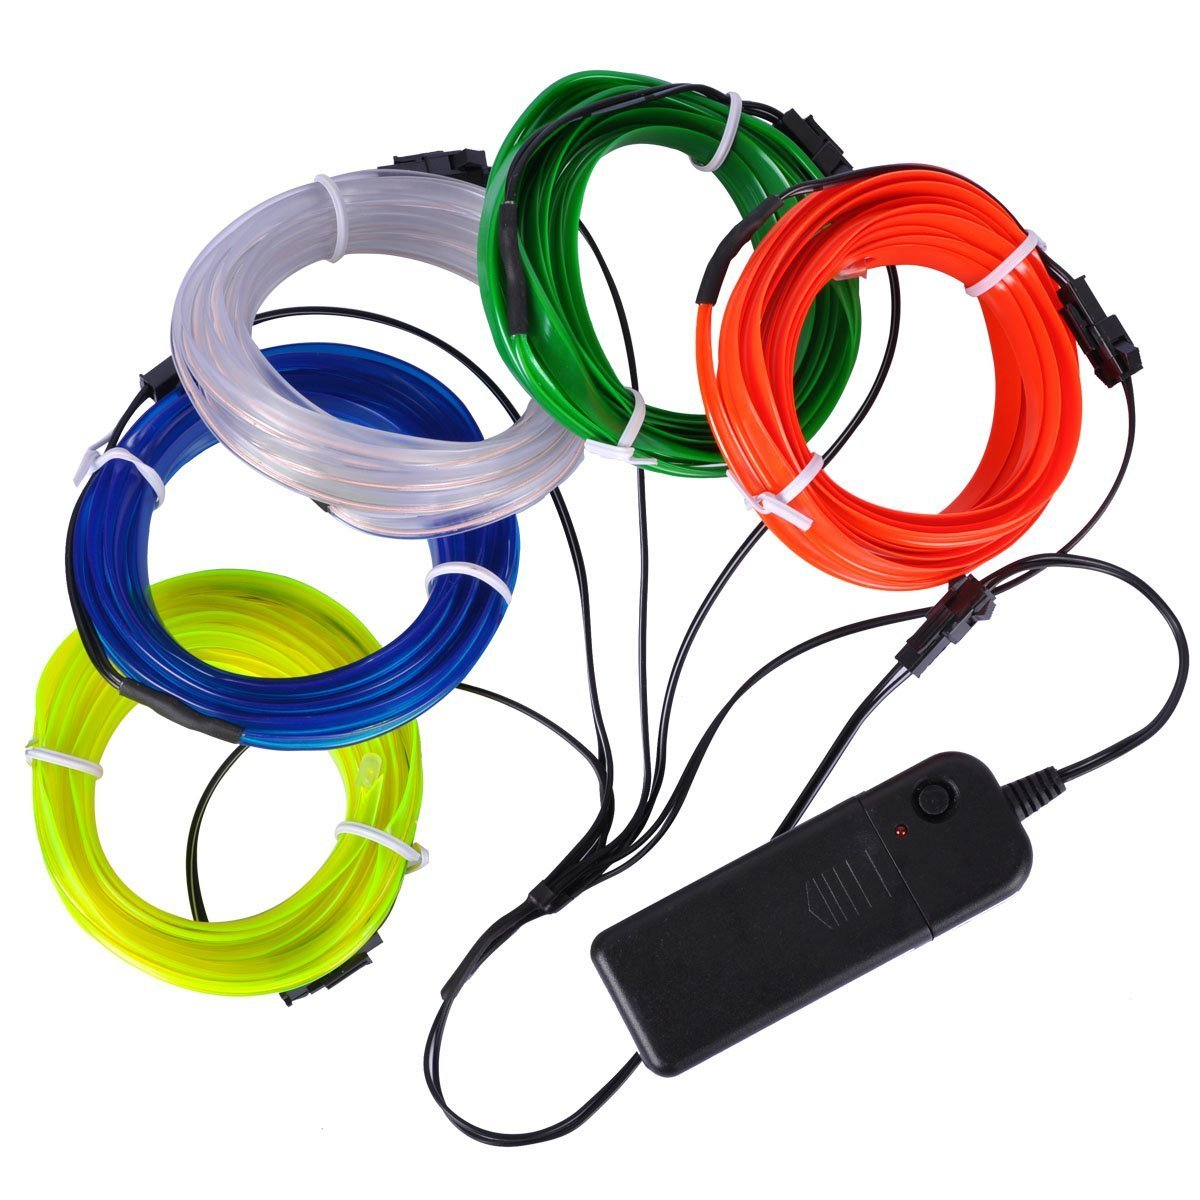 EL Wire Kit, AutoEC 5x3m Neon Light, Glowing Strobing Electroluminescent Wire for Party Car Interior Cosplay Halloween Christmas Decoration (White, Blue, Red, Yellow & Green)